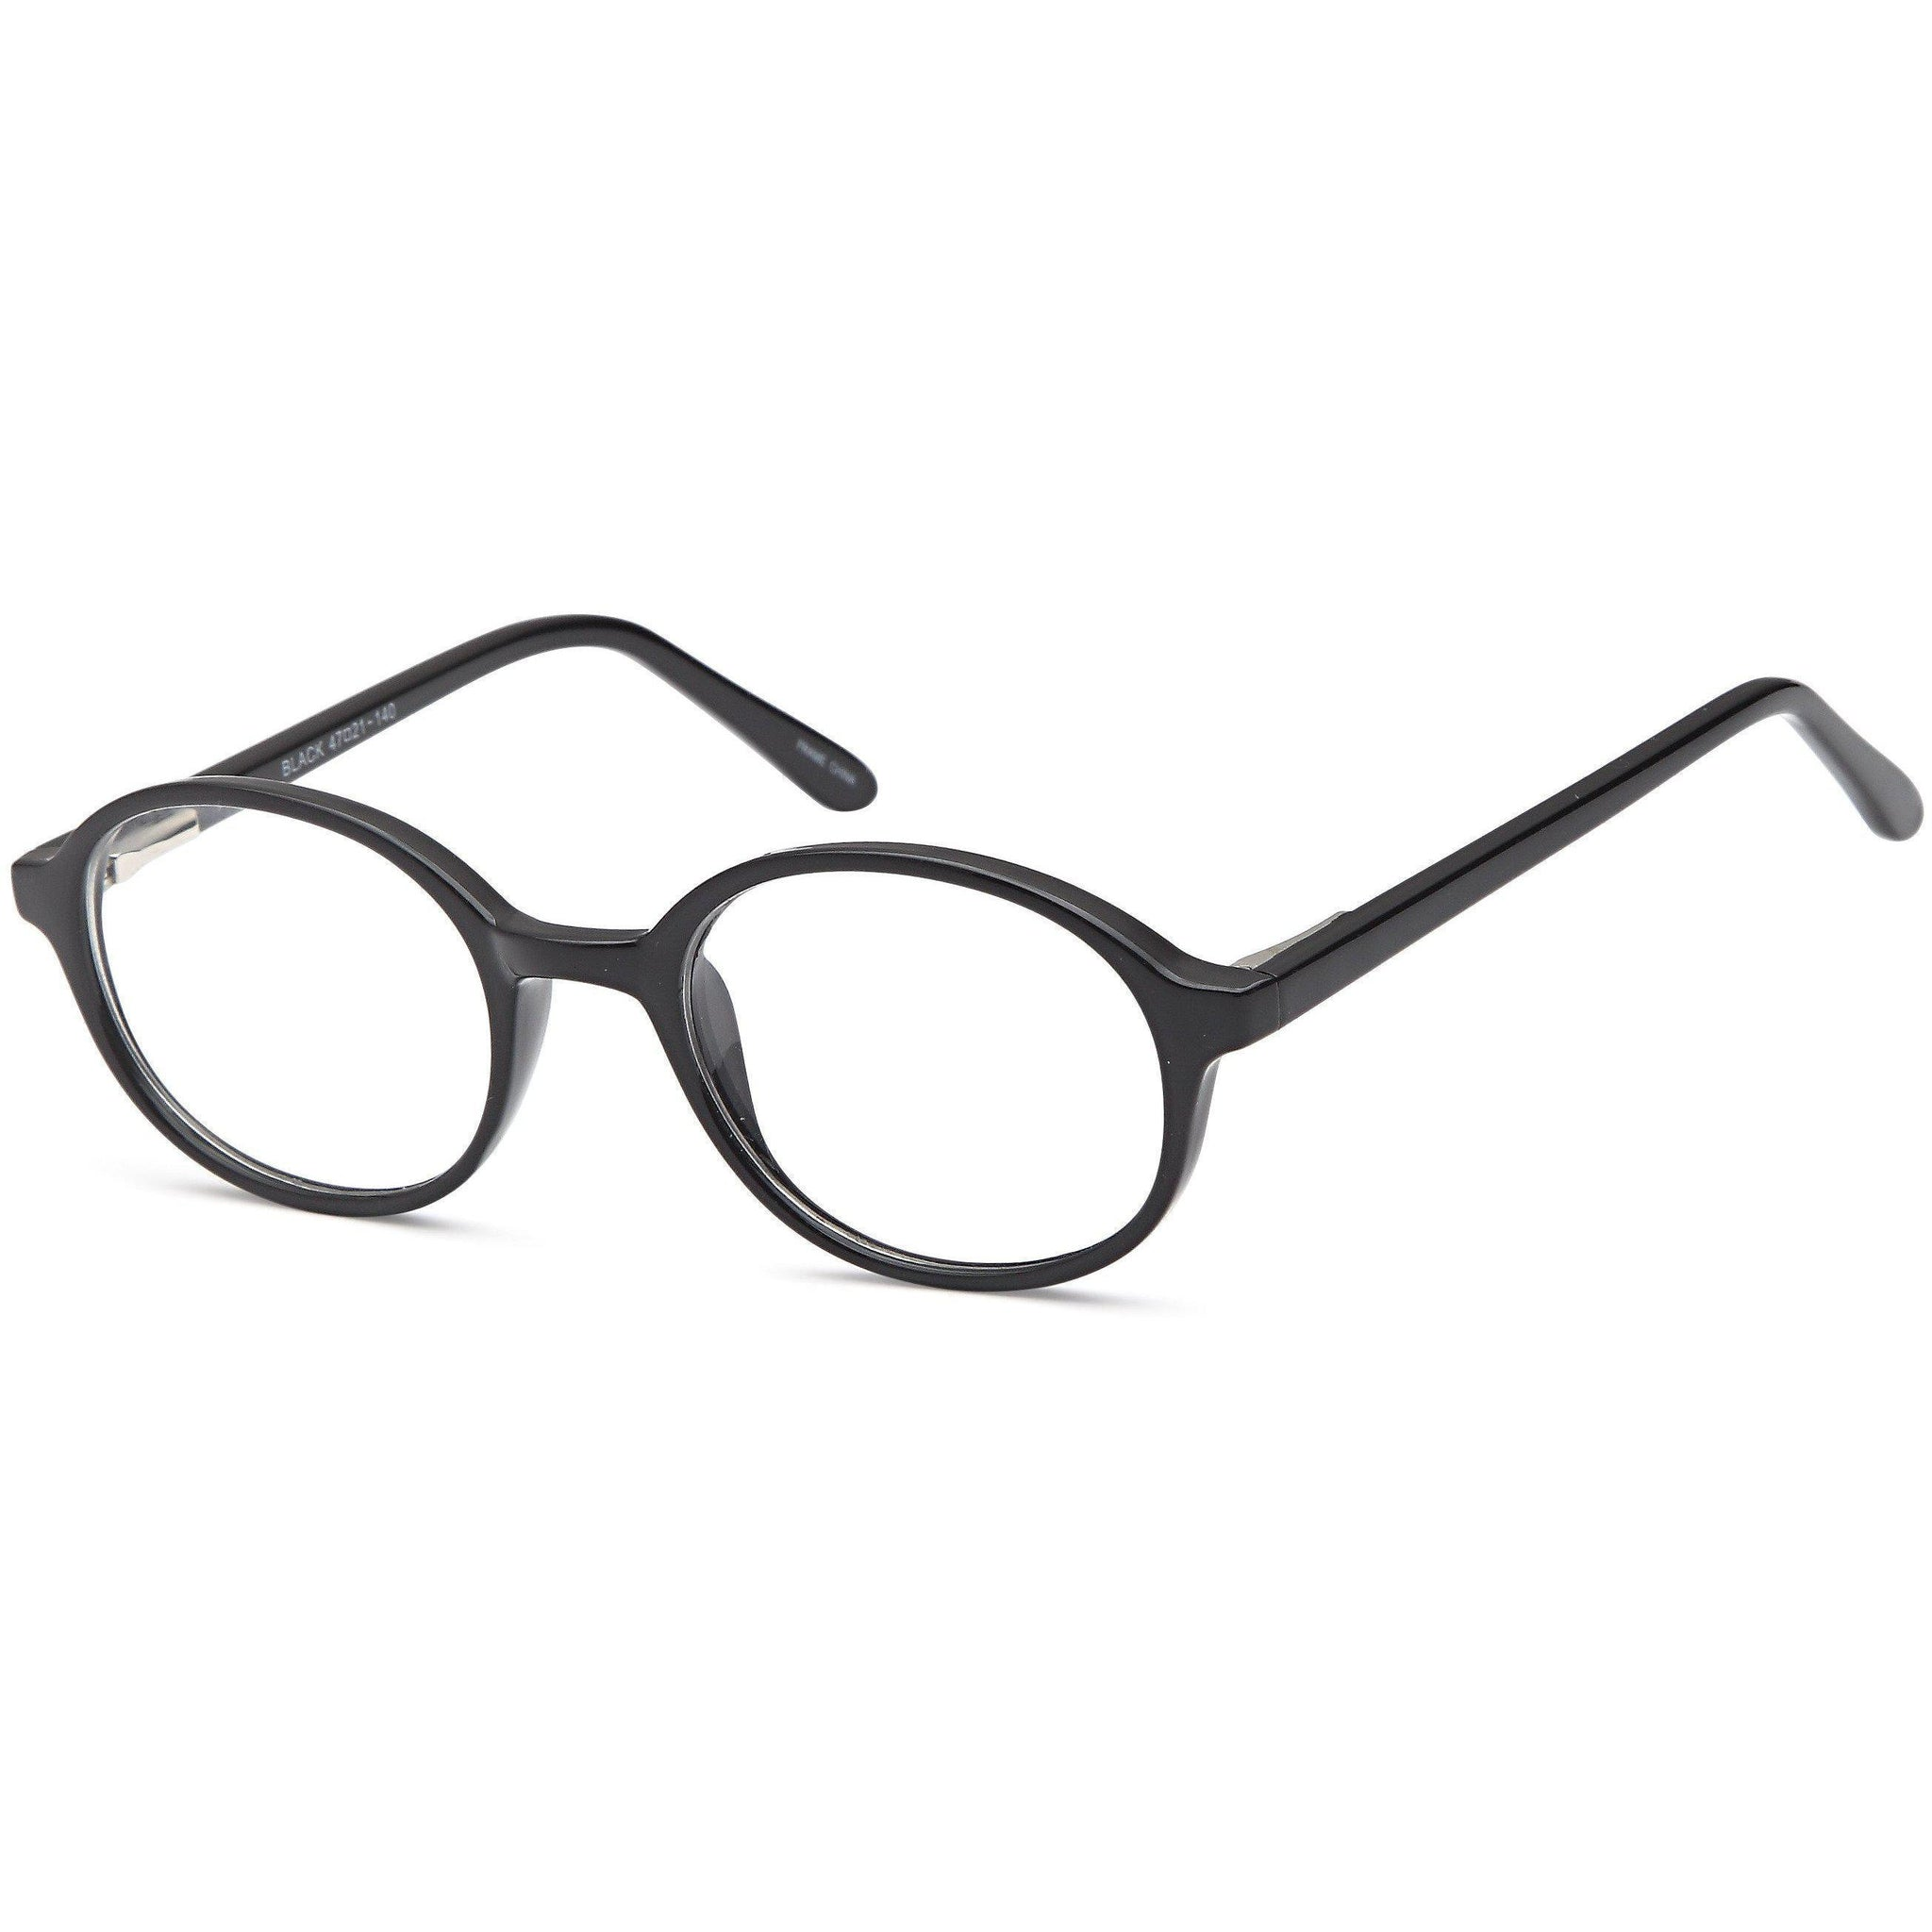 4U Prescription Glasses US 81 Optical Eyeglasses Frame - timetoshade